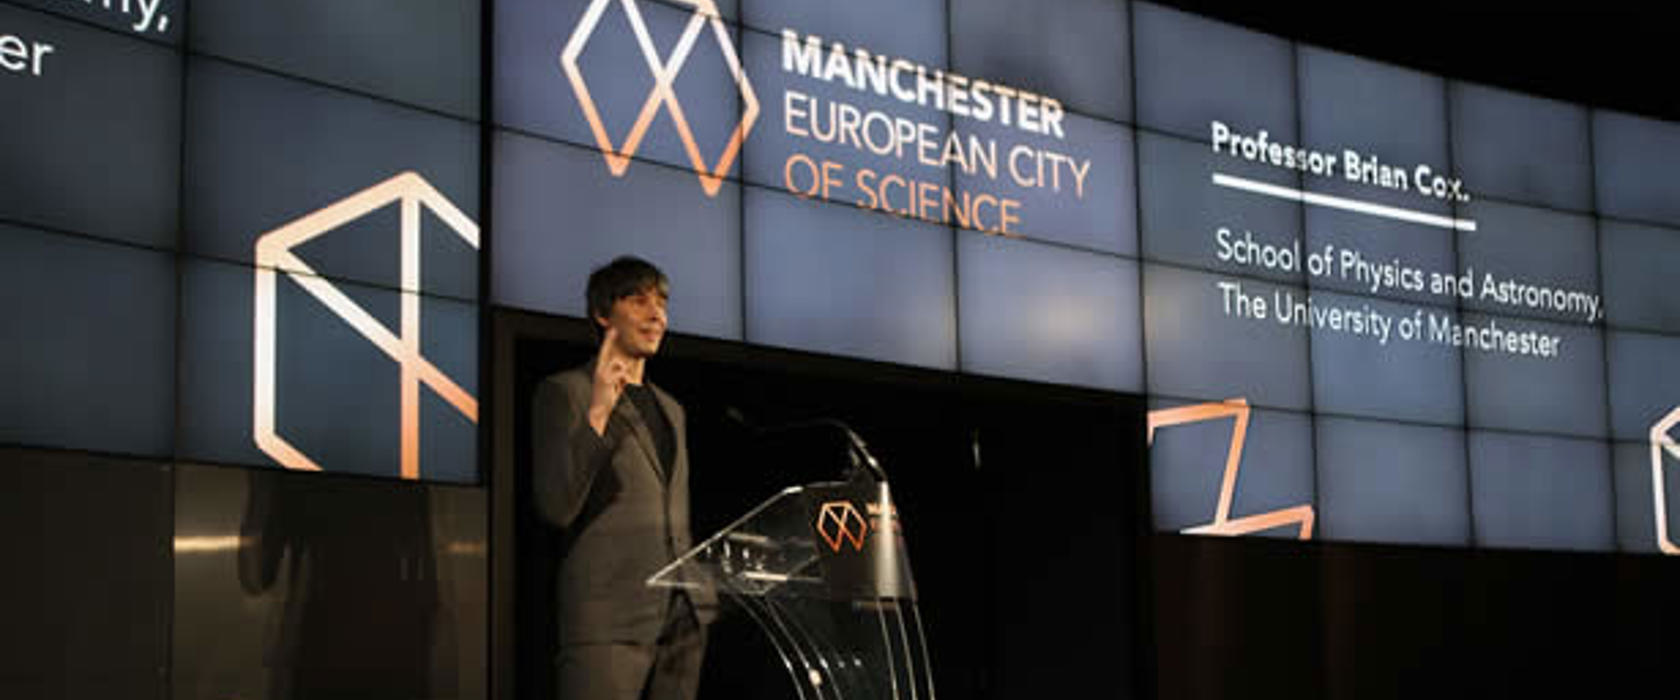 Manchester is the European City of Science